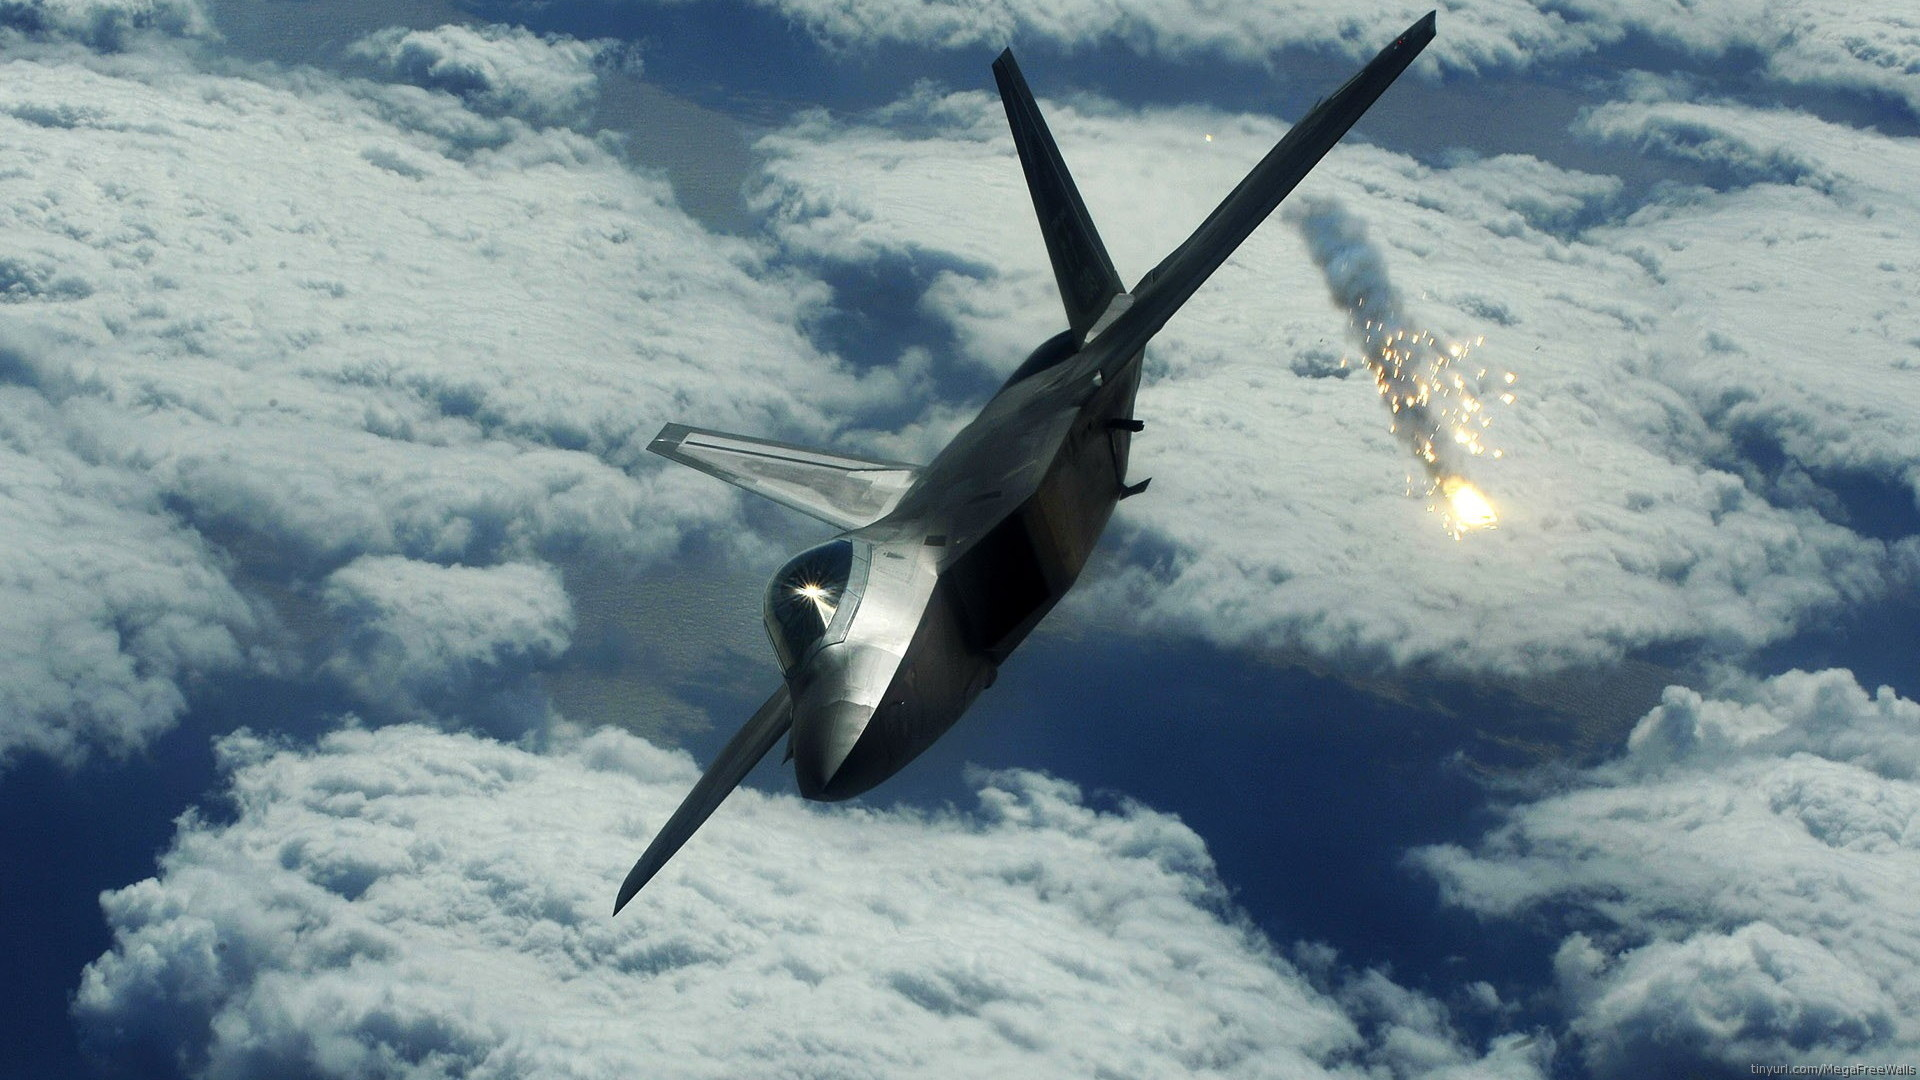 Lockheed Martin F 22 Raptor Computer Wallpapers Desktop 1920x1080